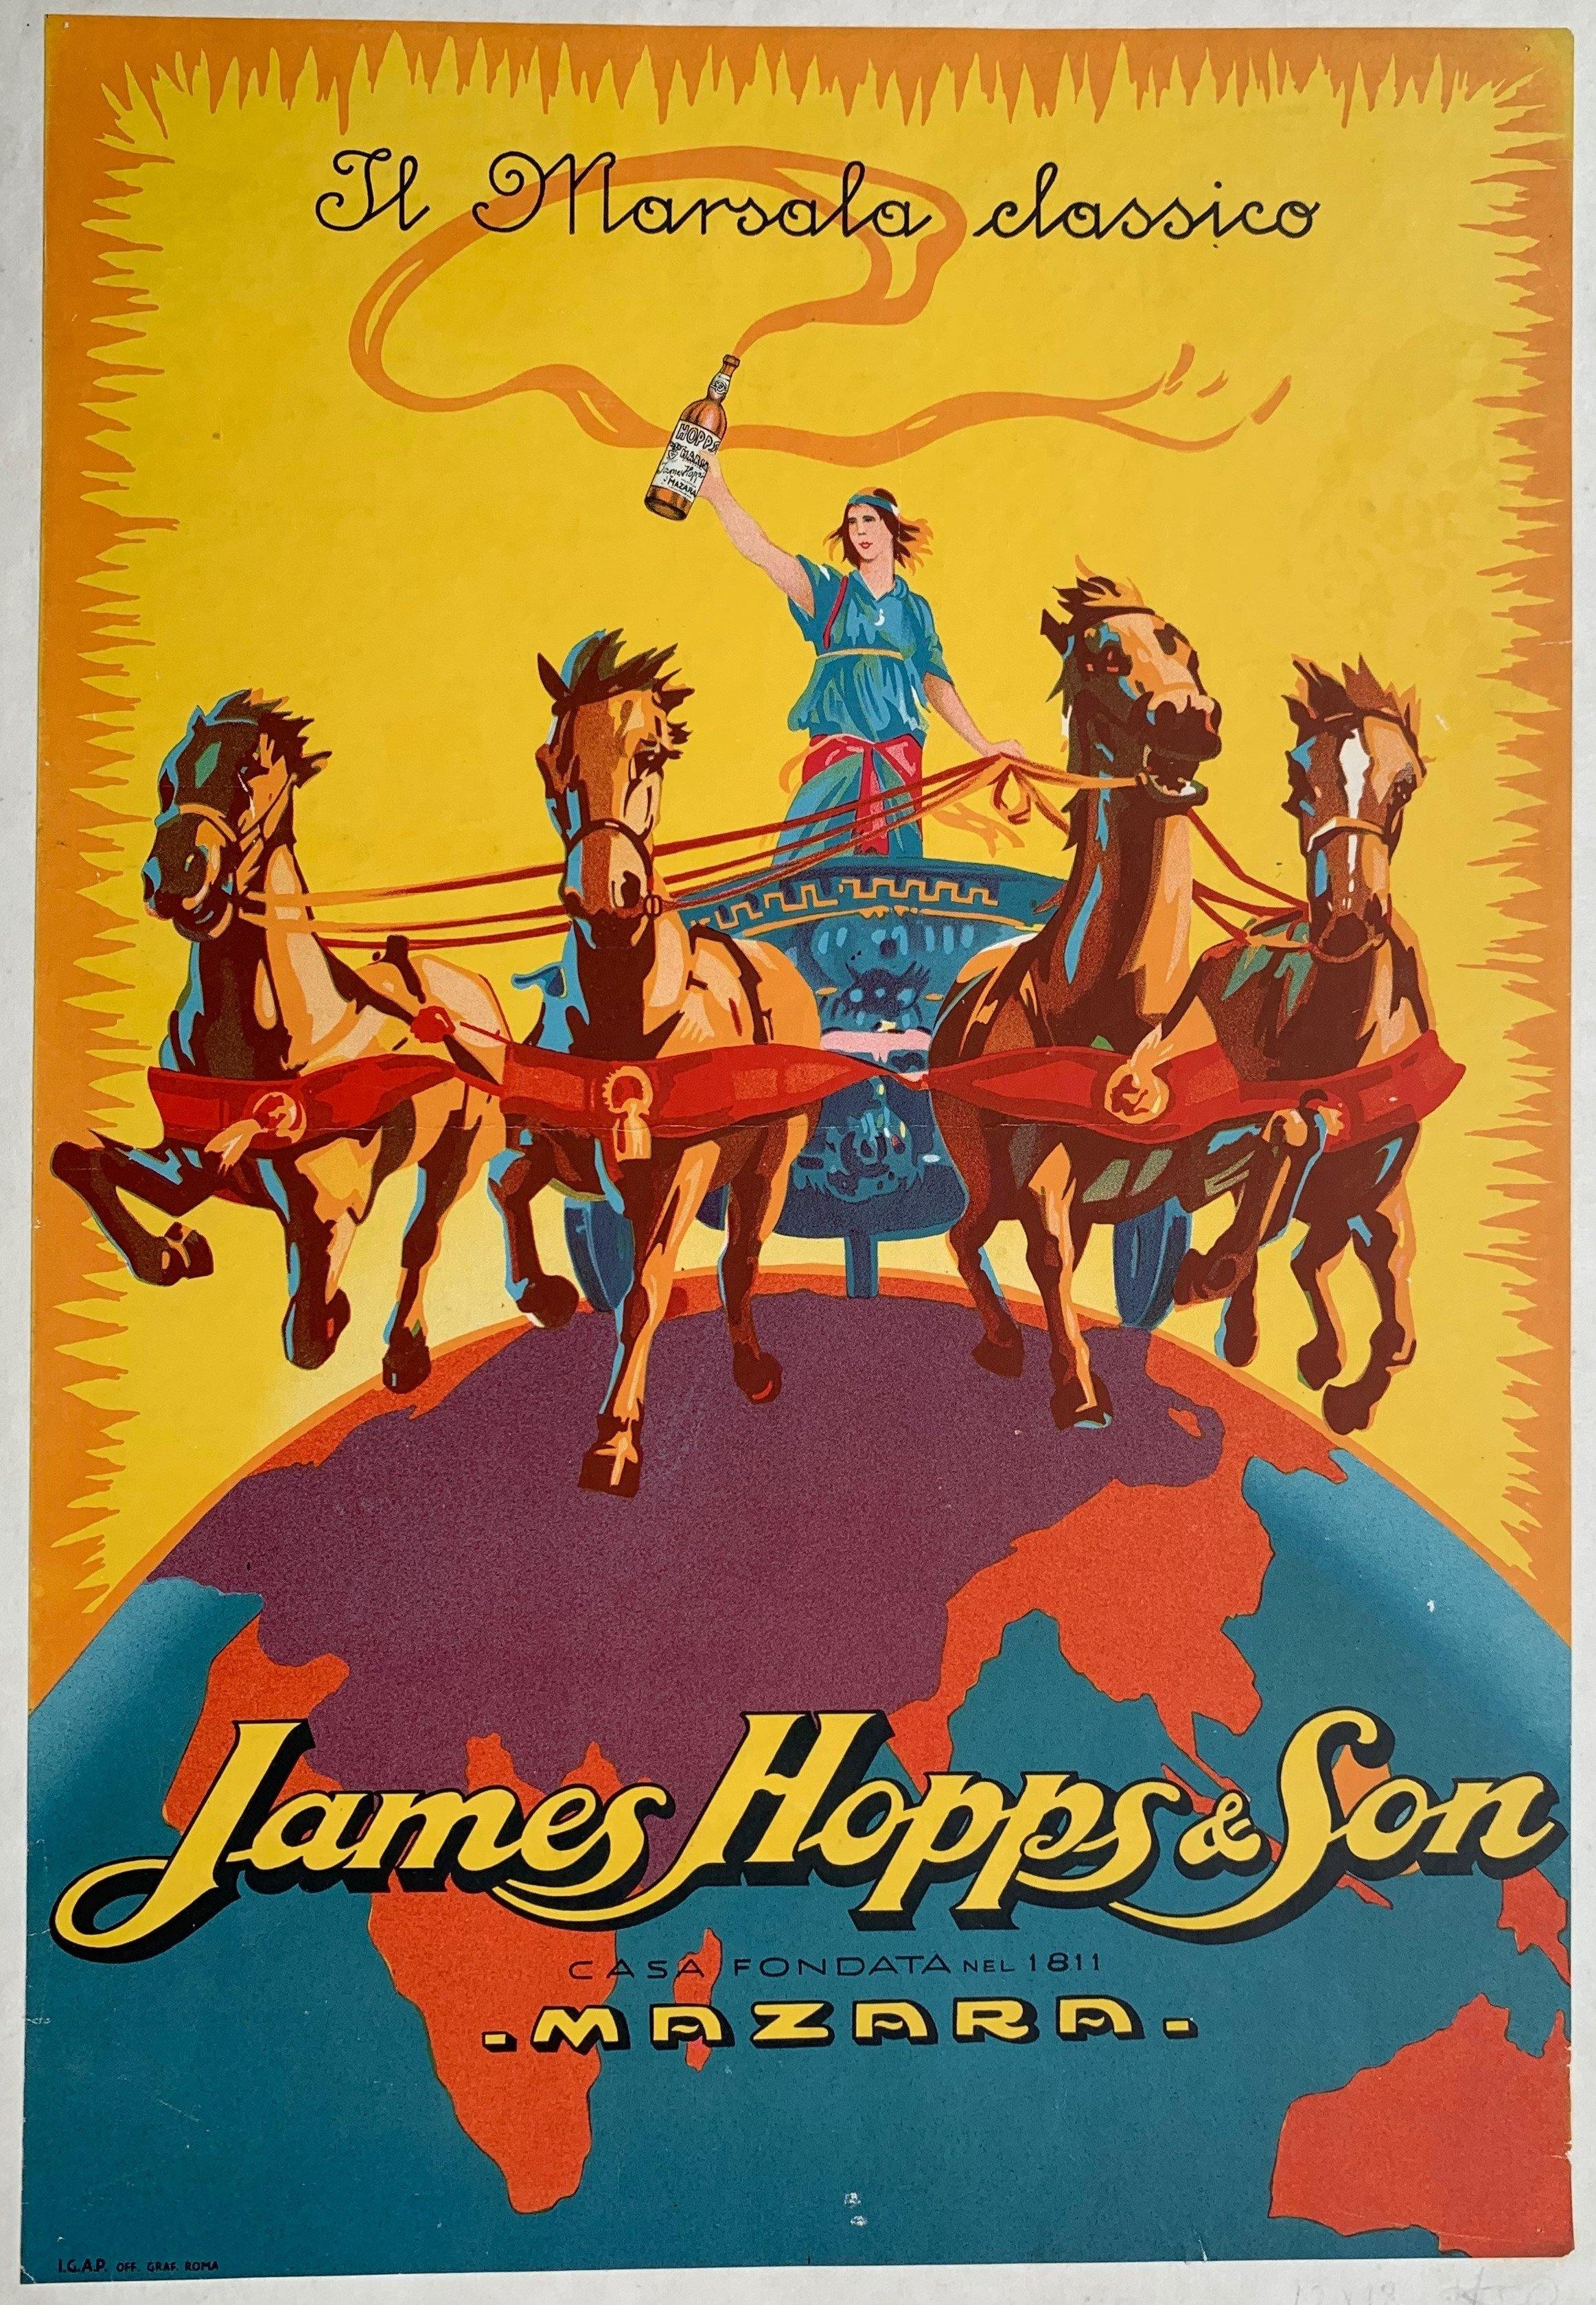 Hopps Marsala Wine / James Hopps & Son